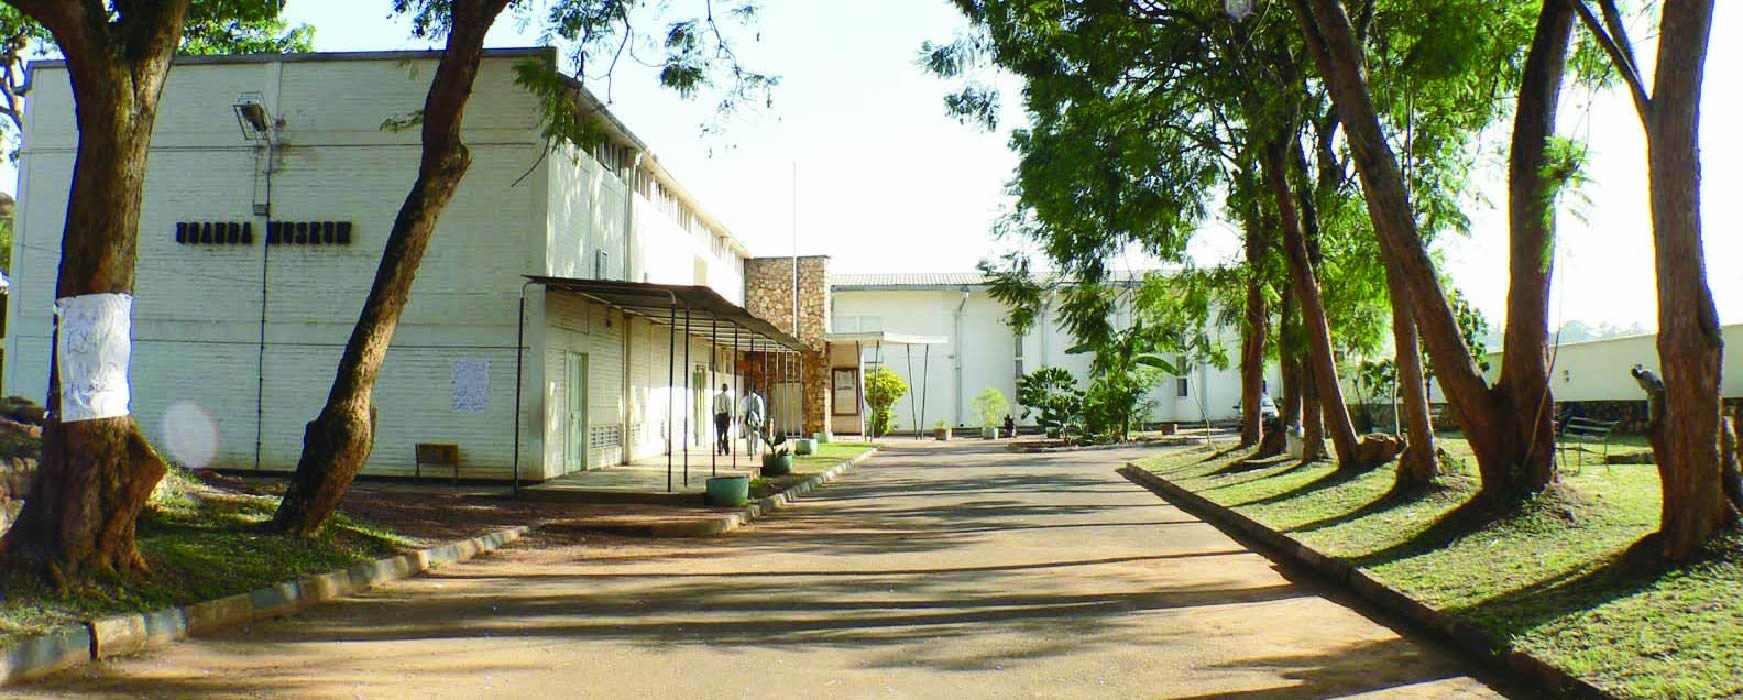 The Uganda National Museum - Pre colonial History Africa